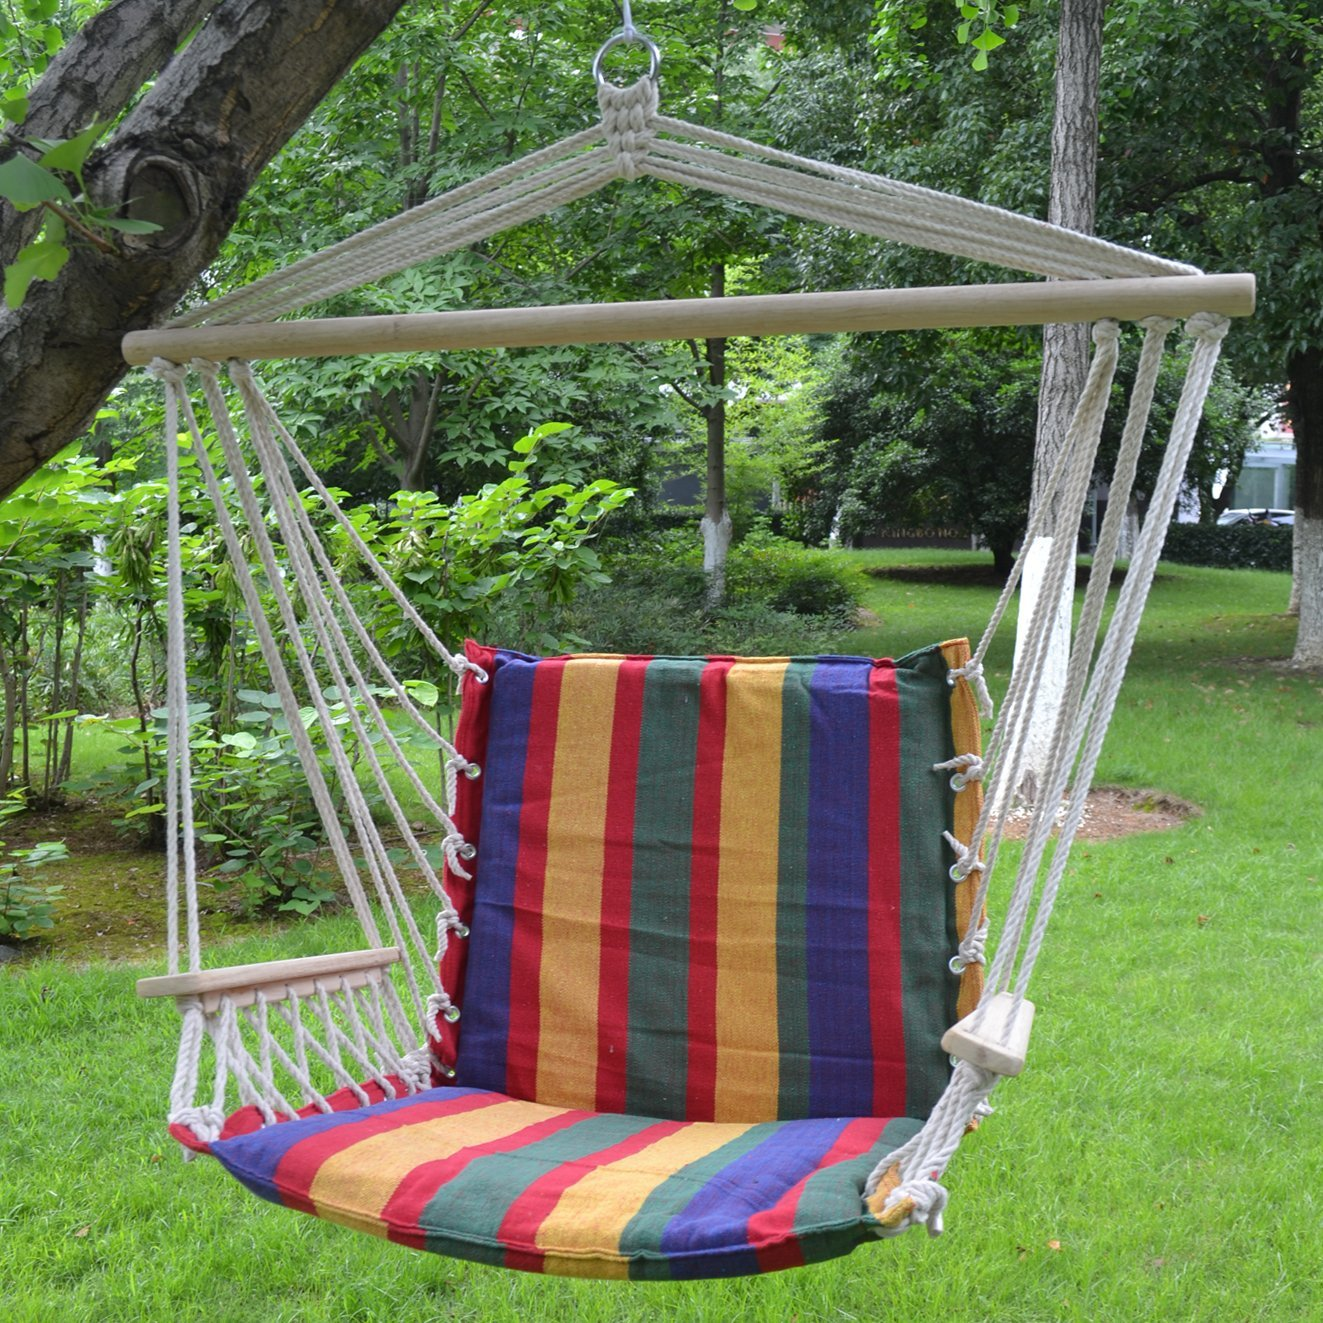 STRONG CAMEL New Cotton Hanging Air Chair Hammock Porch Swing Stripe  Colorful Max Weight Capacity Of